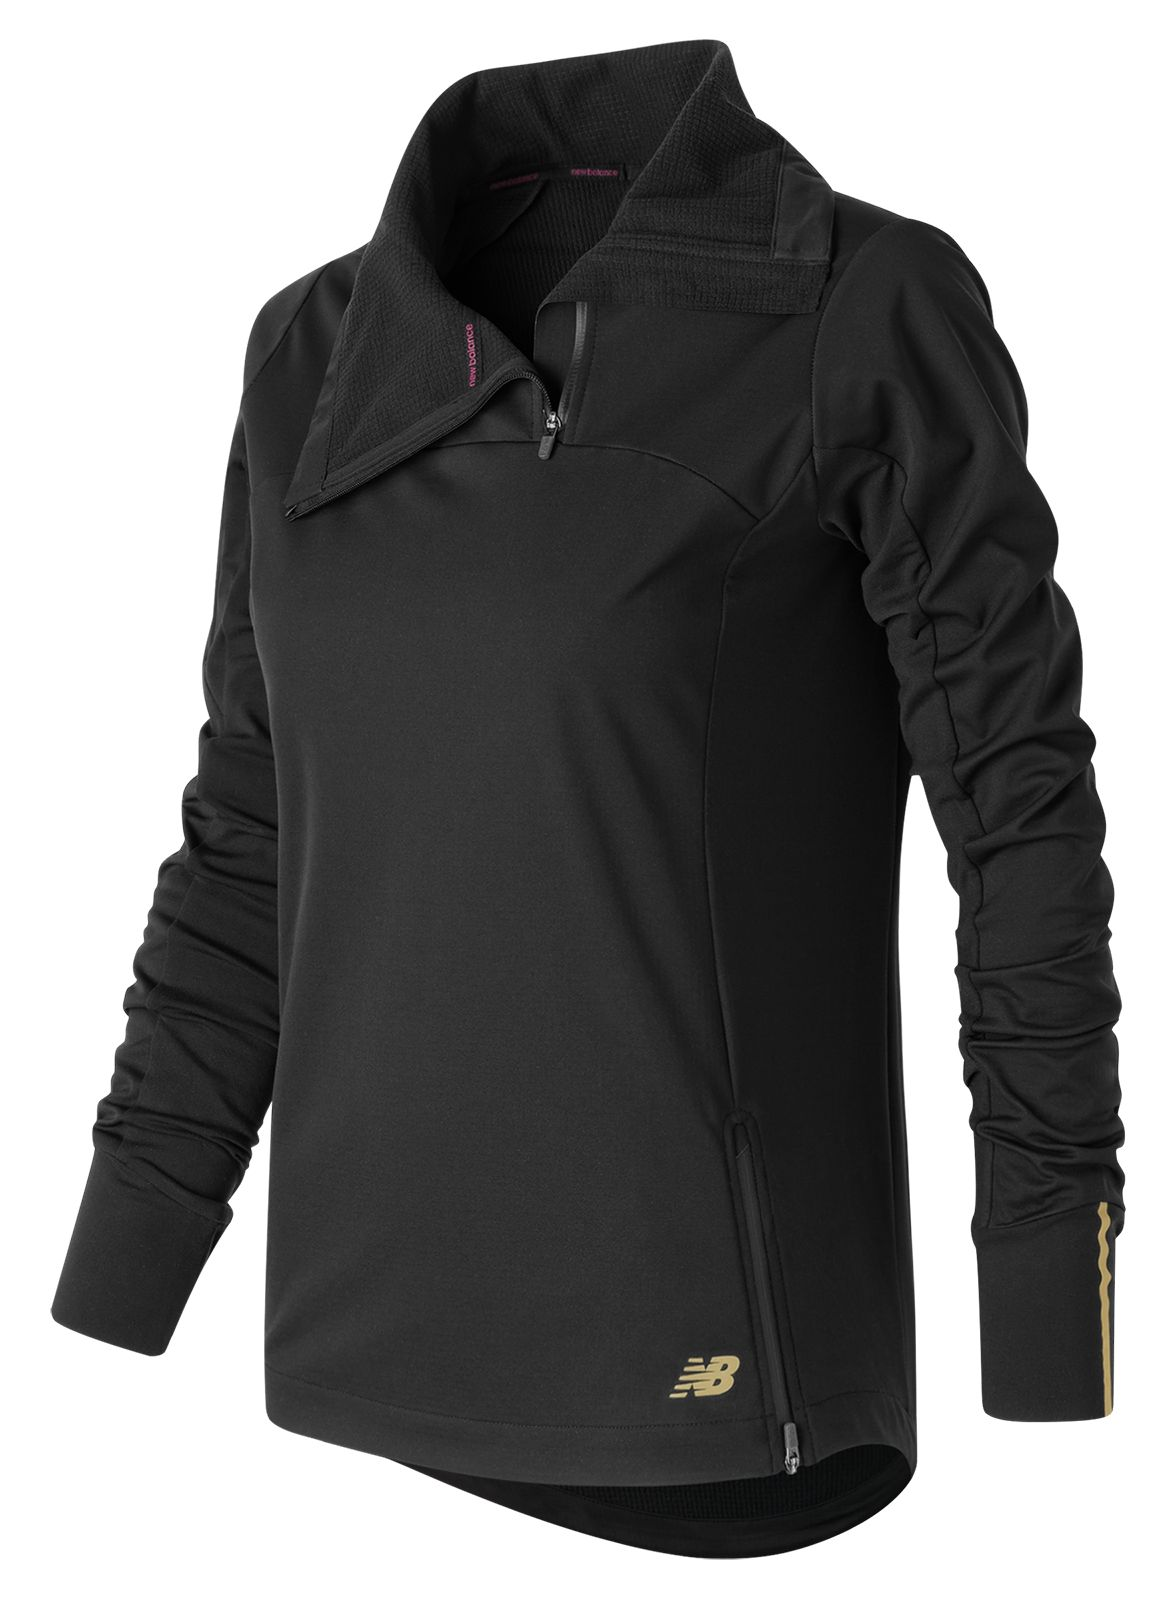 New Balance : Soft Shell Quarter Zip : Women's Performance : WT63123BK